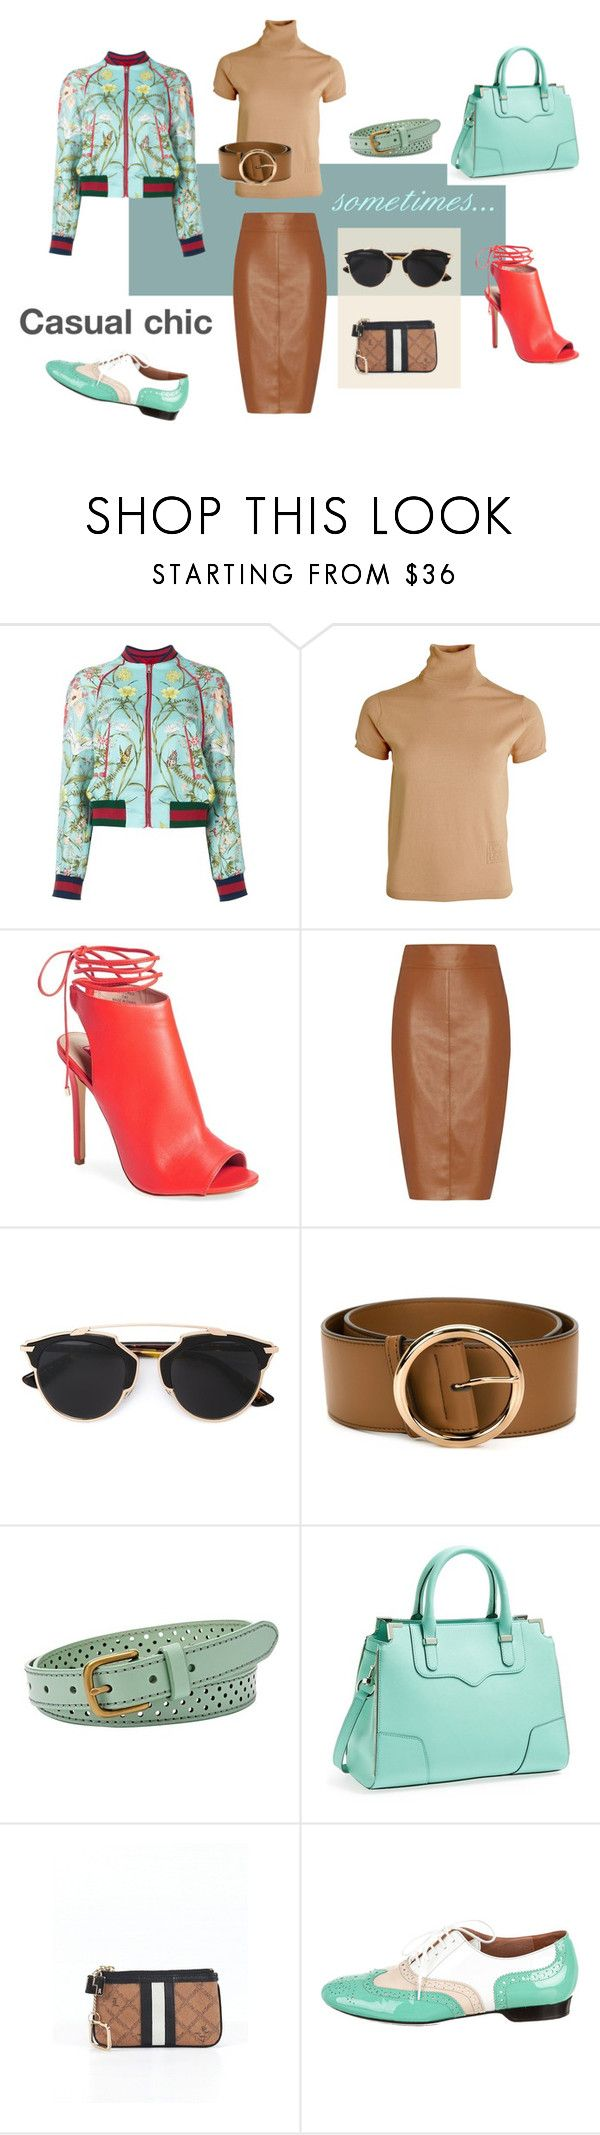 """""""Casual chic"""" by pinfi on Polyvore featuring Gucci, Totême, Topshop, Bailey 44, Christian Dior, STELLA McCARTNEY, FOSSIL, Rebecca Minkoff, L.A.M.B. and Robert Clergerie #fashion #trends"""